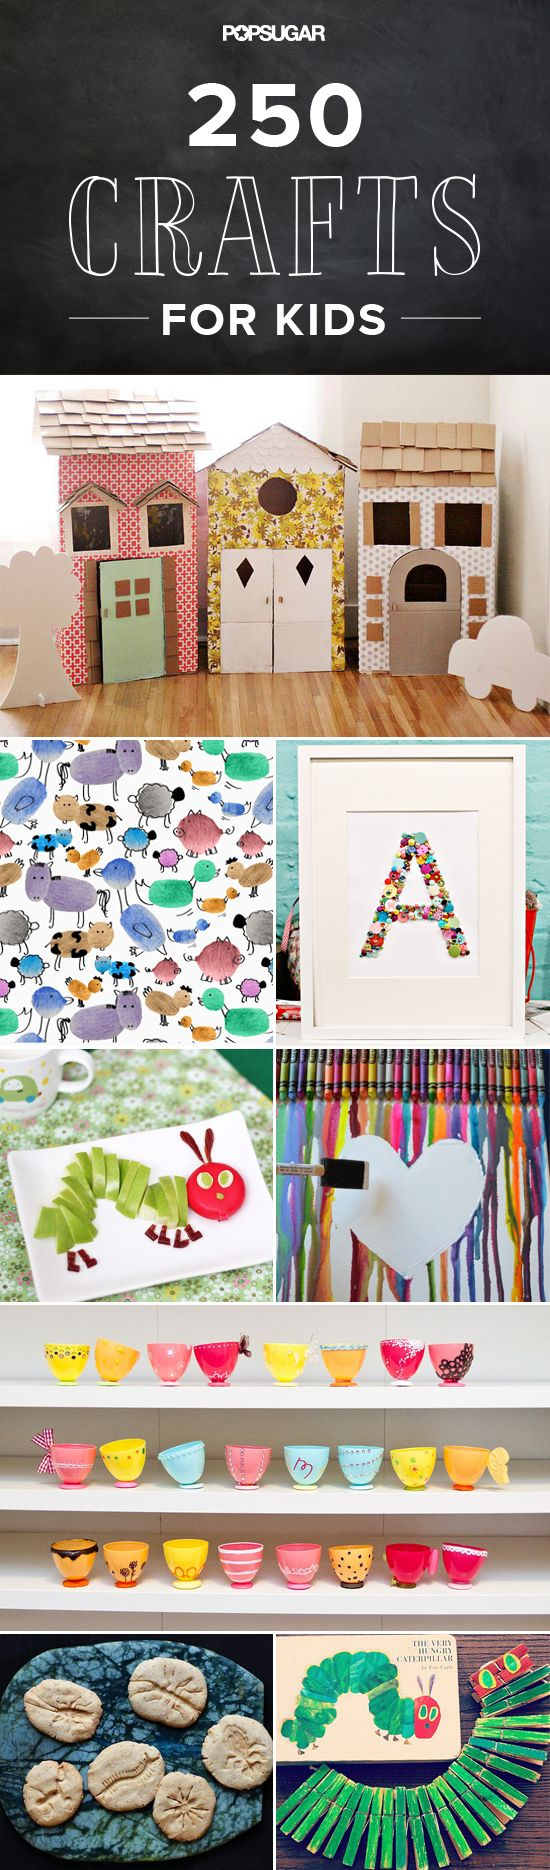 Easy Ways to Get Crafty With Your Kids When Youre Stuck Inside